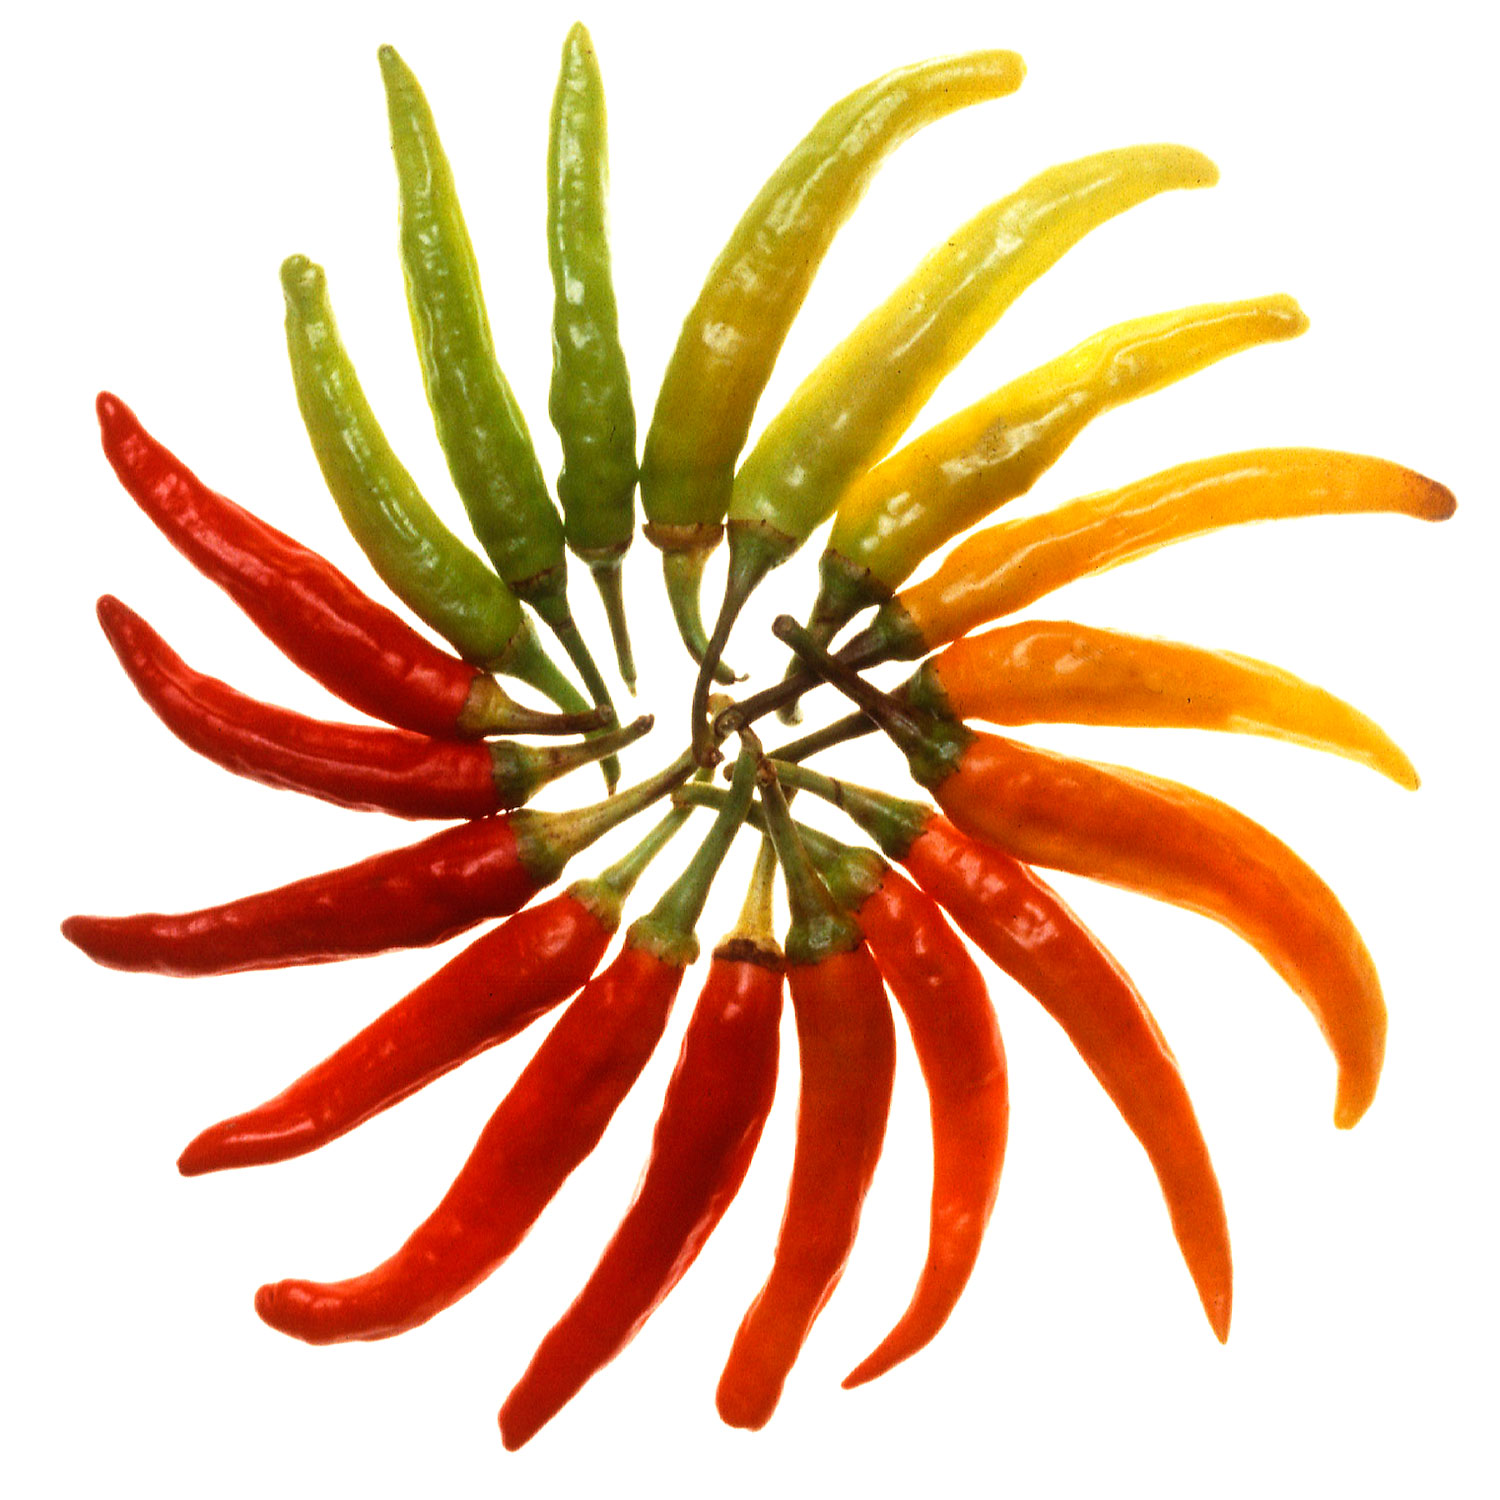 Charleston_Hot_peppers_white_background